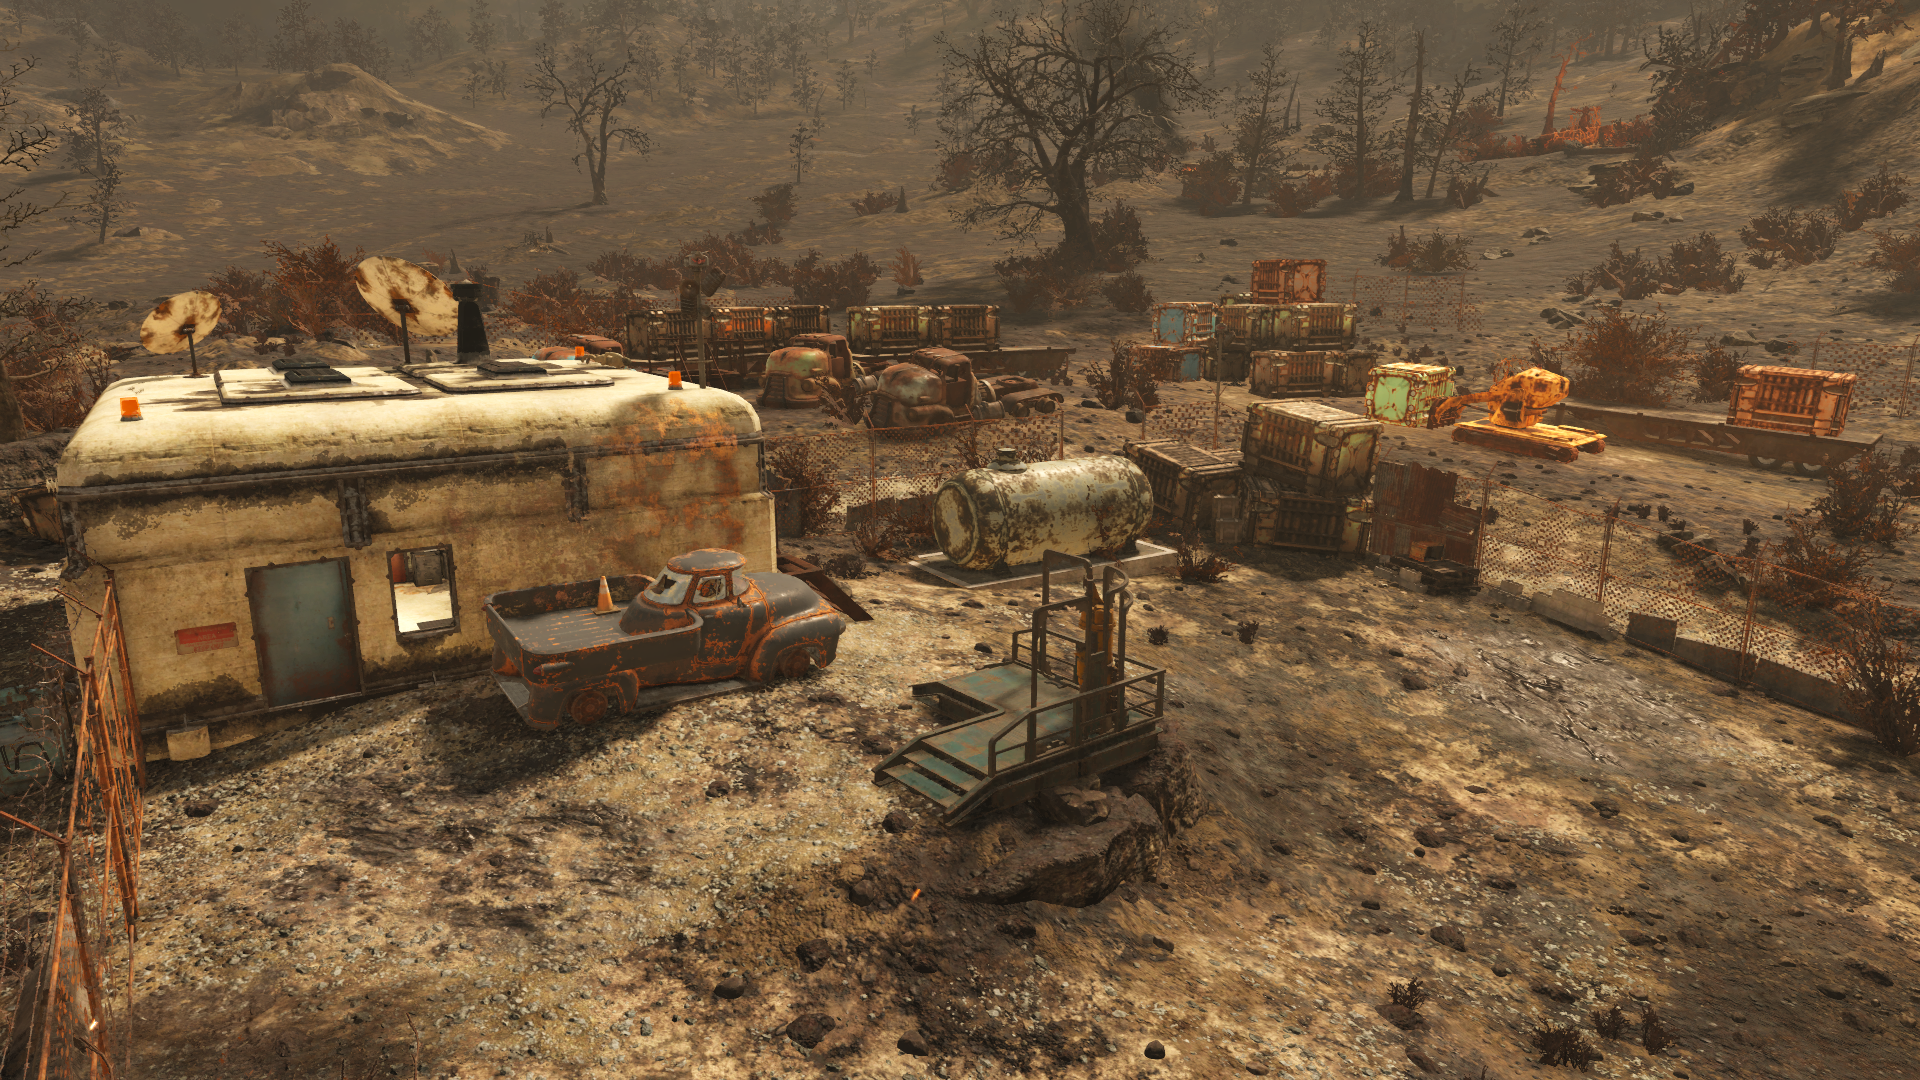 FO76 Hornwright testing site 2.png